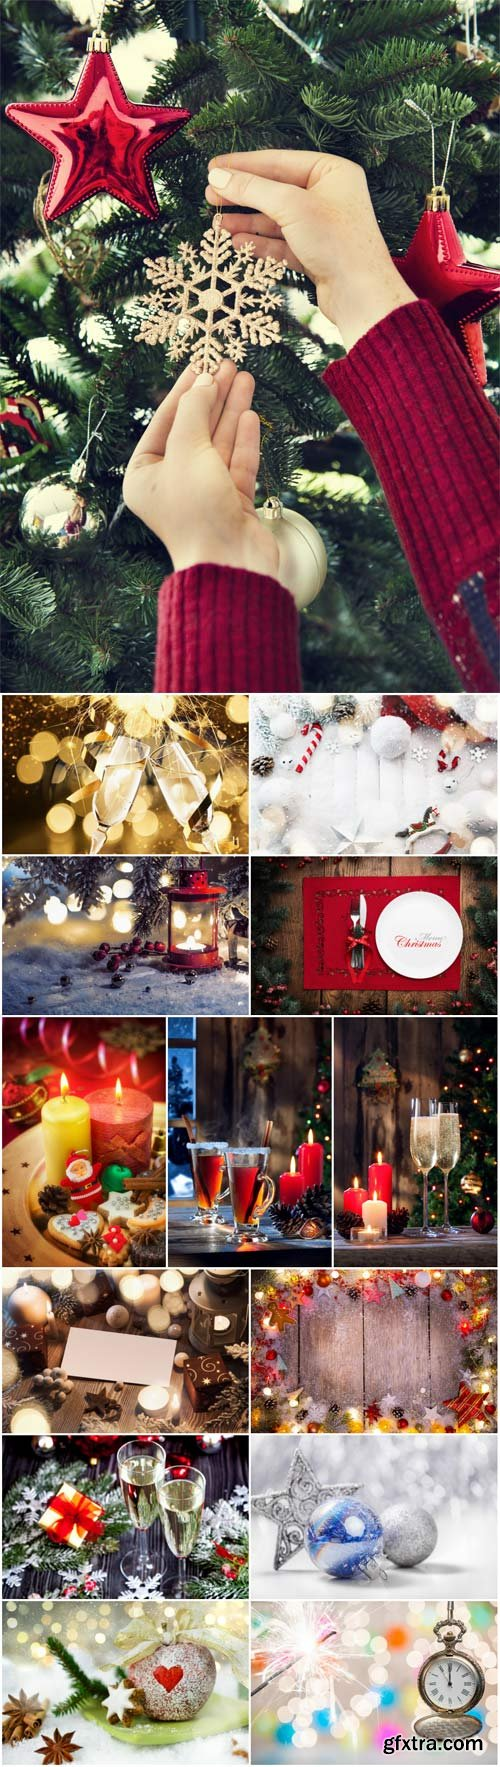 New Year and Christmas stock photos №58